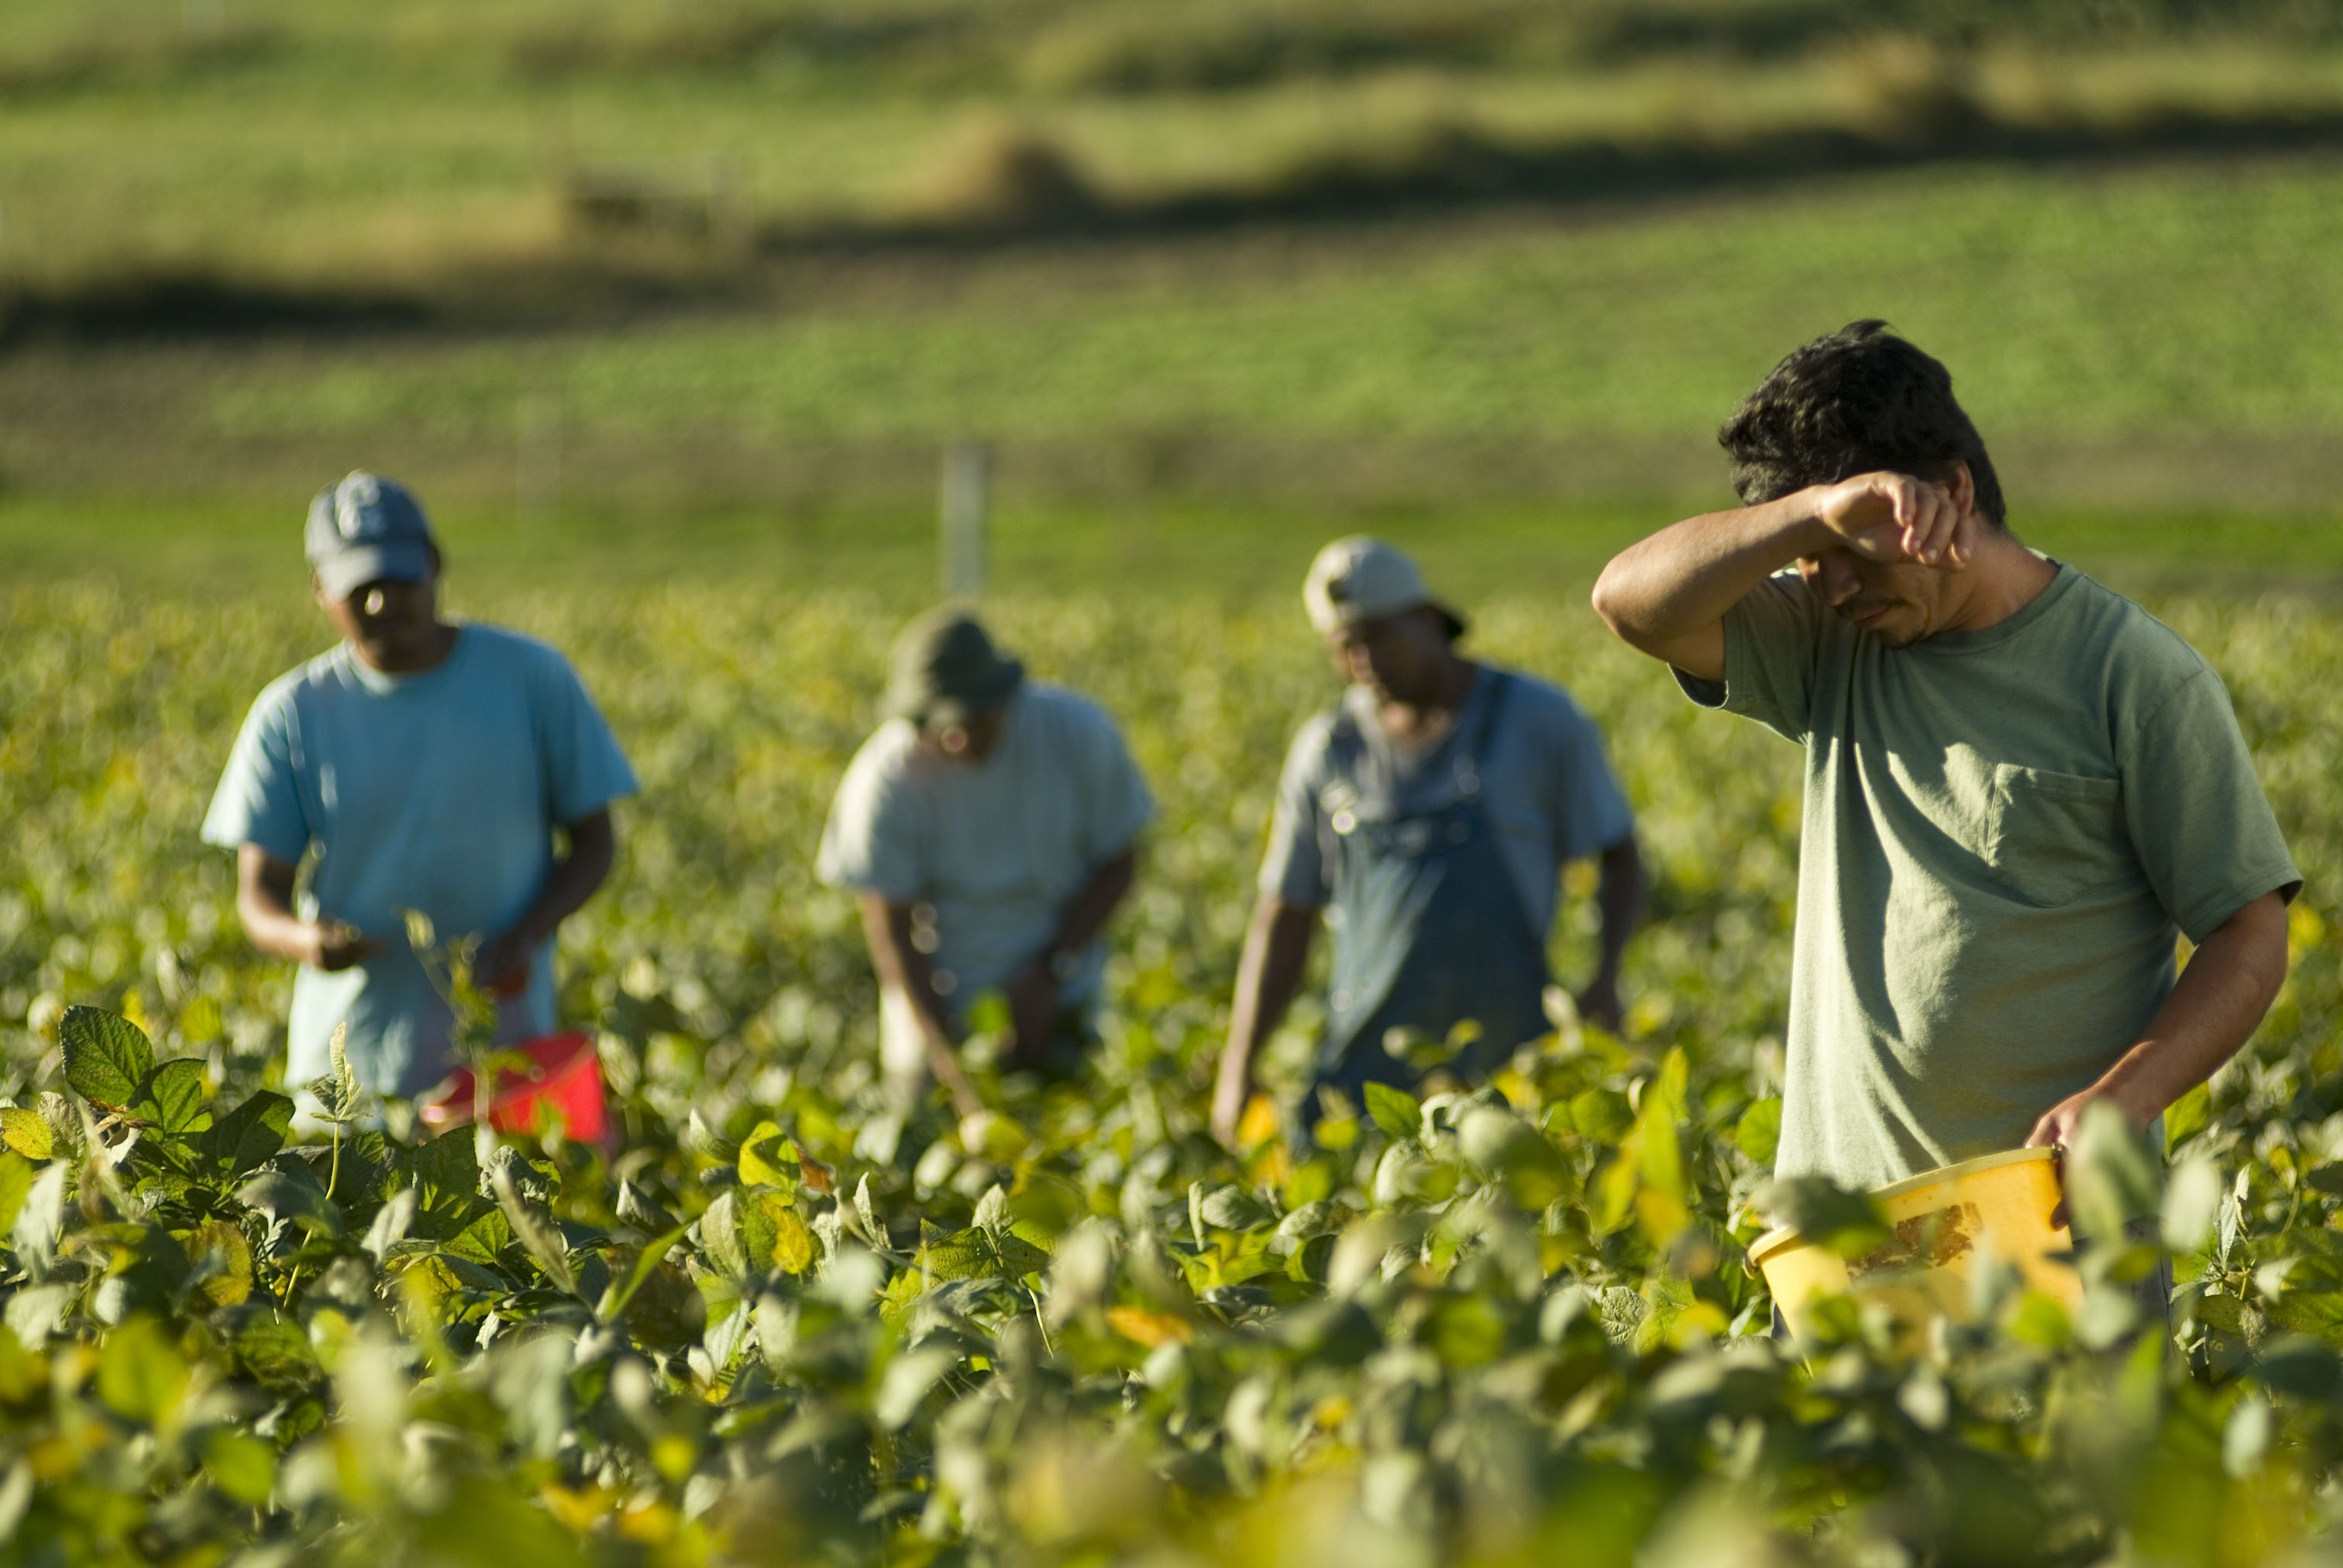 Labor Trafficking in Agriculture